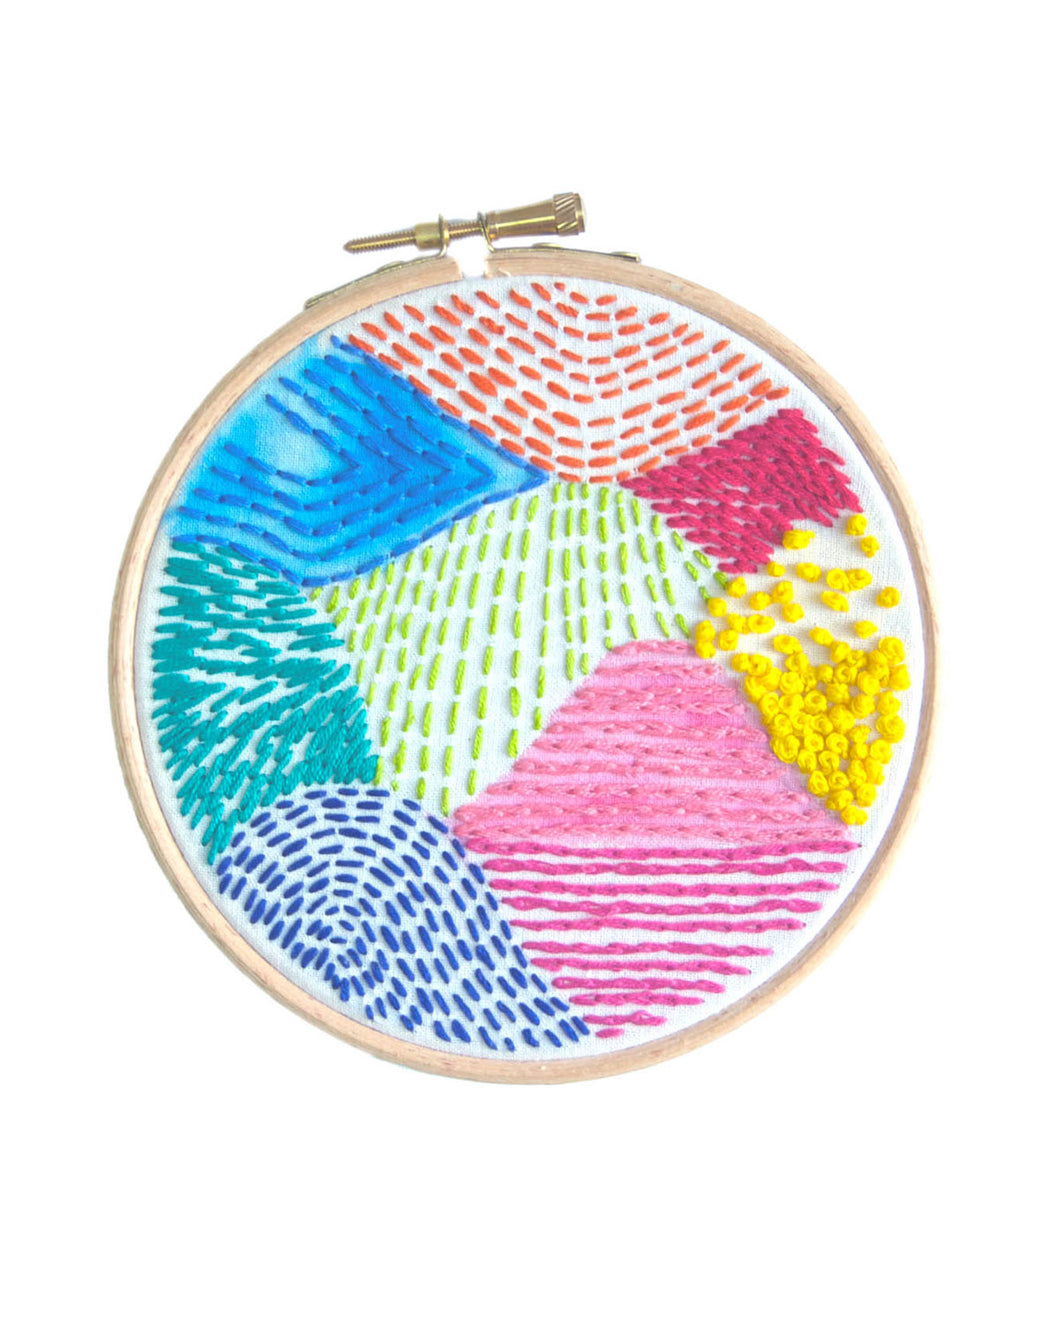 Abstract Mountain Painted & Embroidered Hoop Art